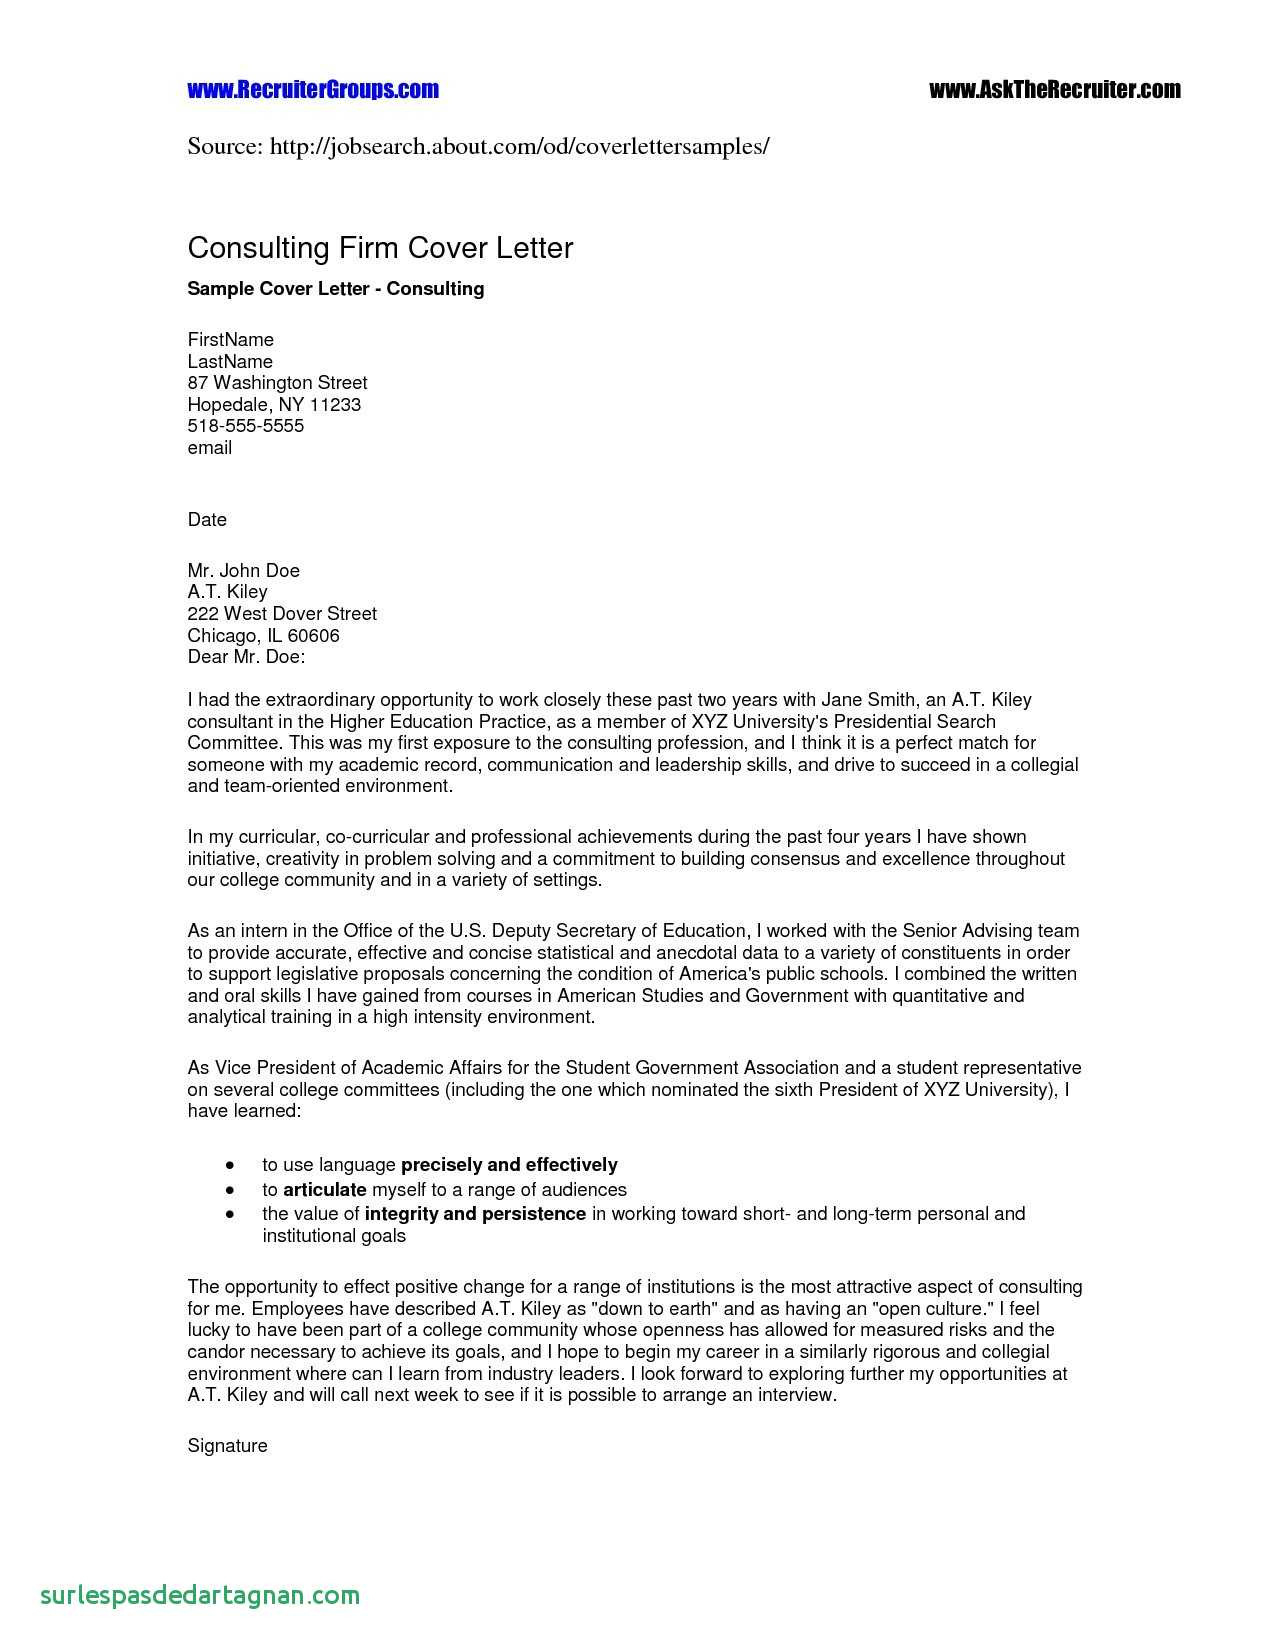 Sample Donation Letter Template - Letter Template for Donations Request Fresh Sale Proposal Letter